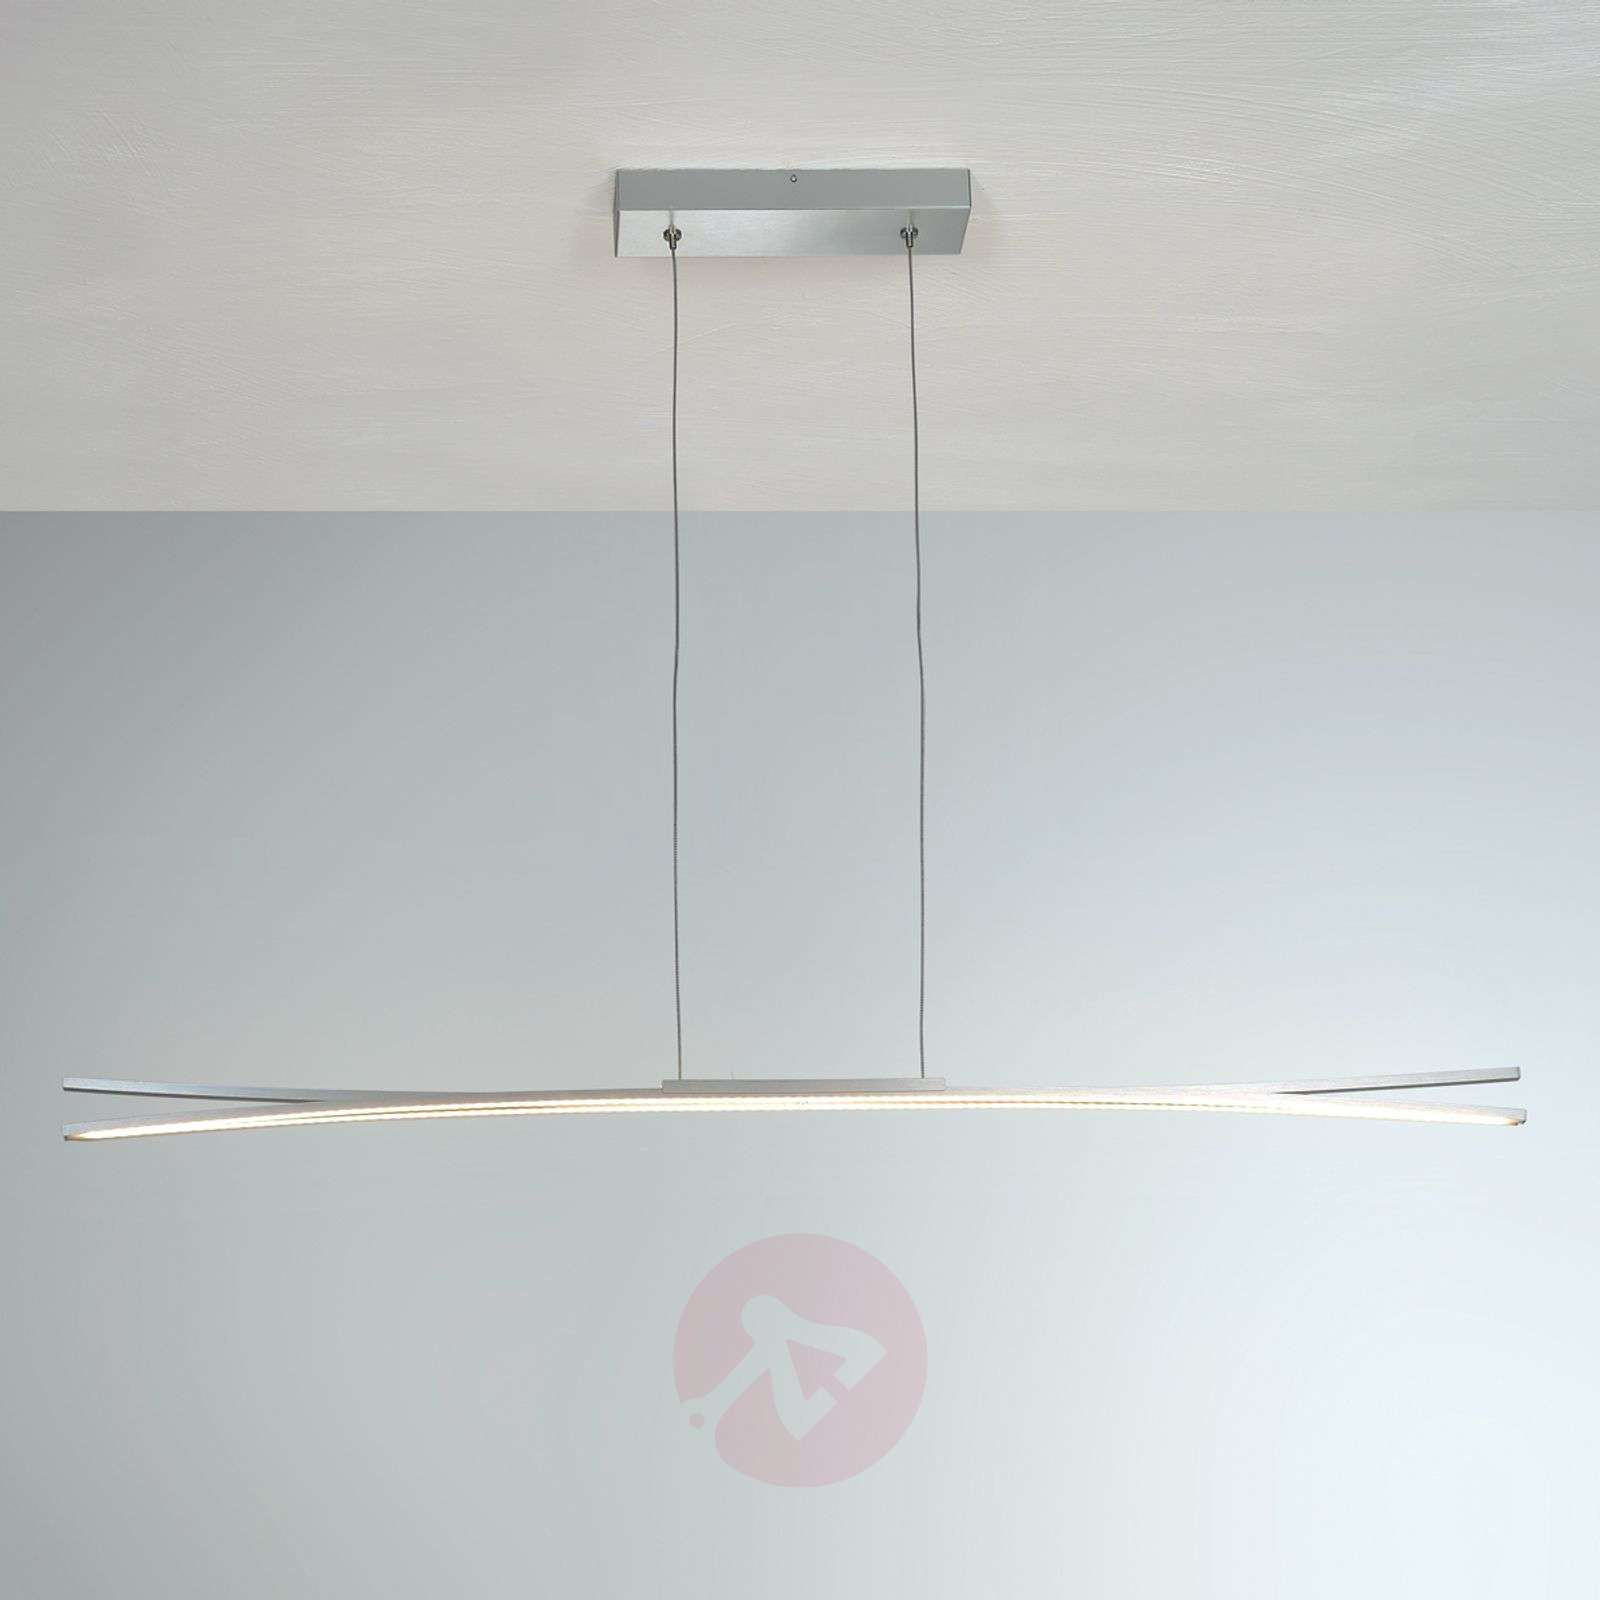 Suspension LED Convex, 120 cm avec bandes LED-1556118-01